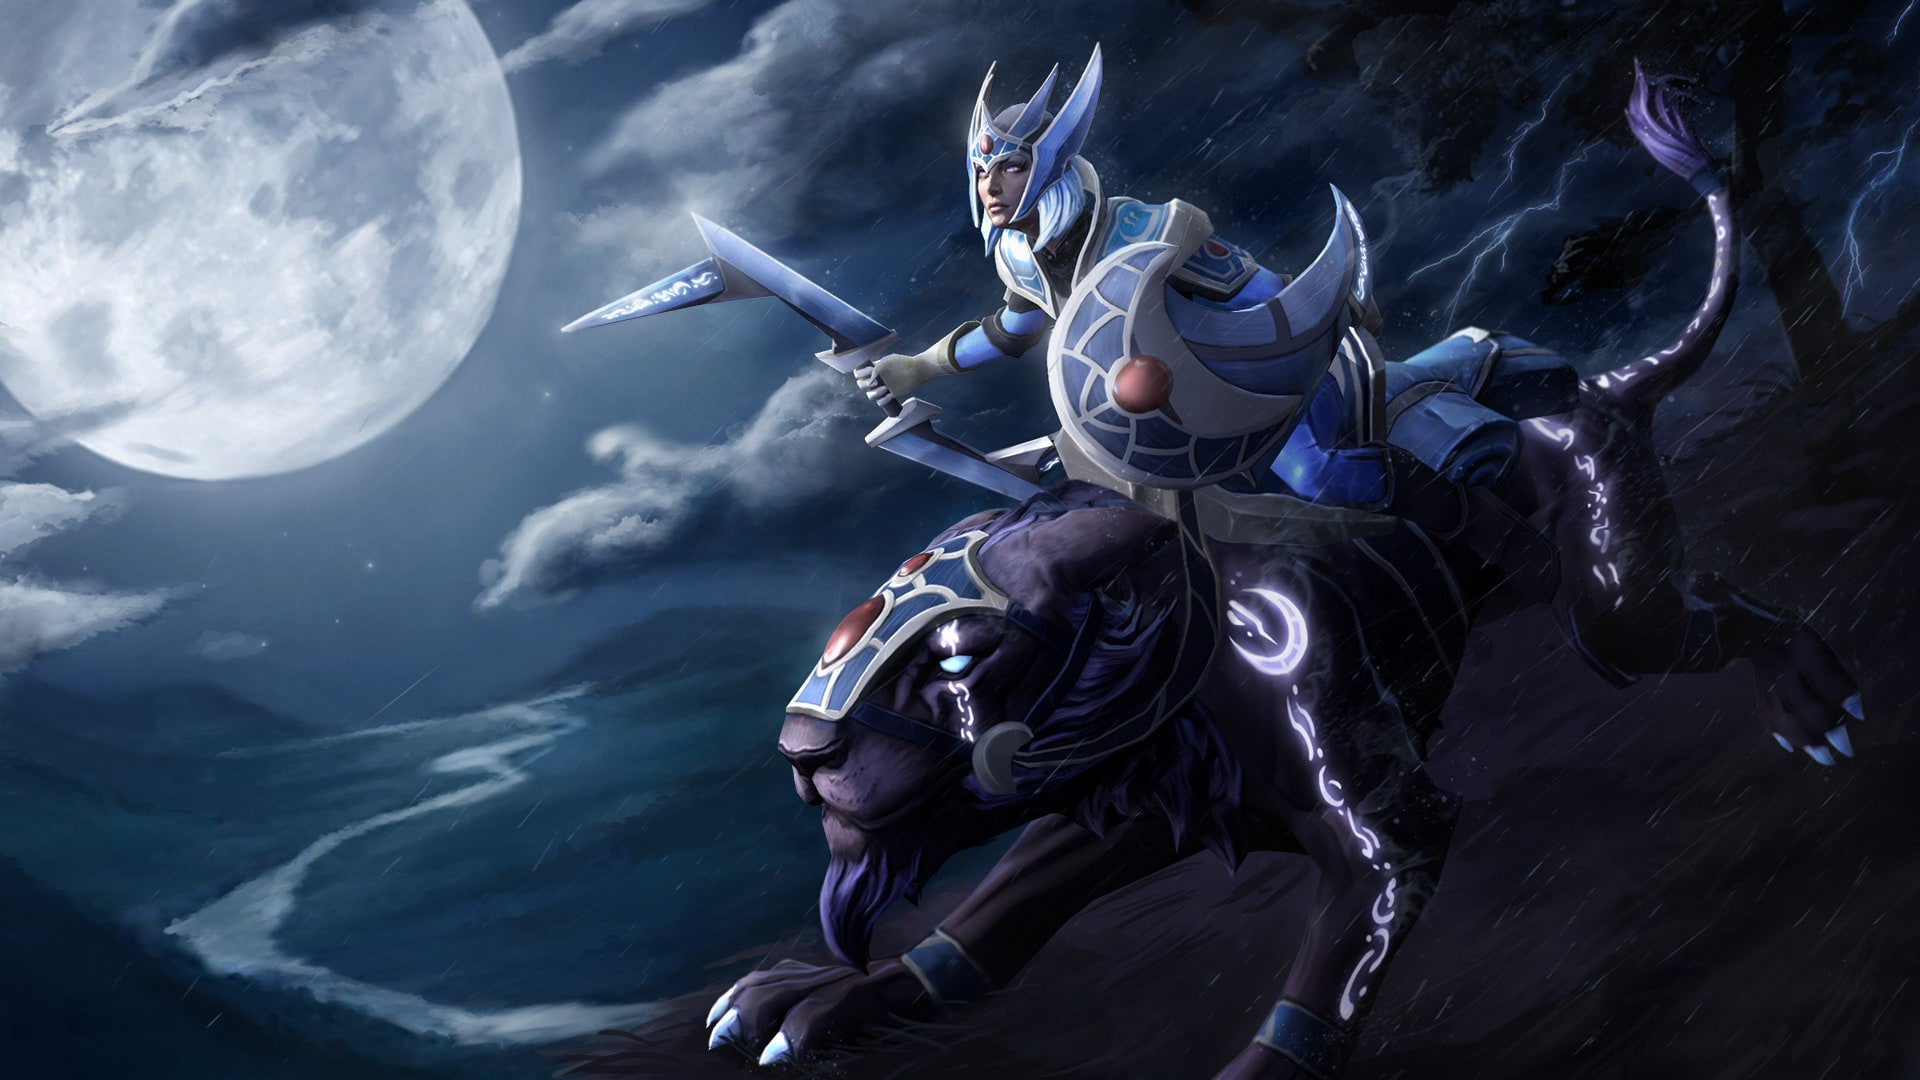 Dota 2 Slardar Wallpaper Desktop Is Cool Wallpapers